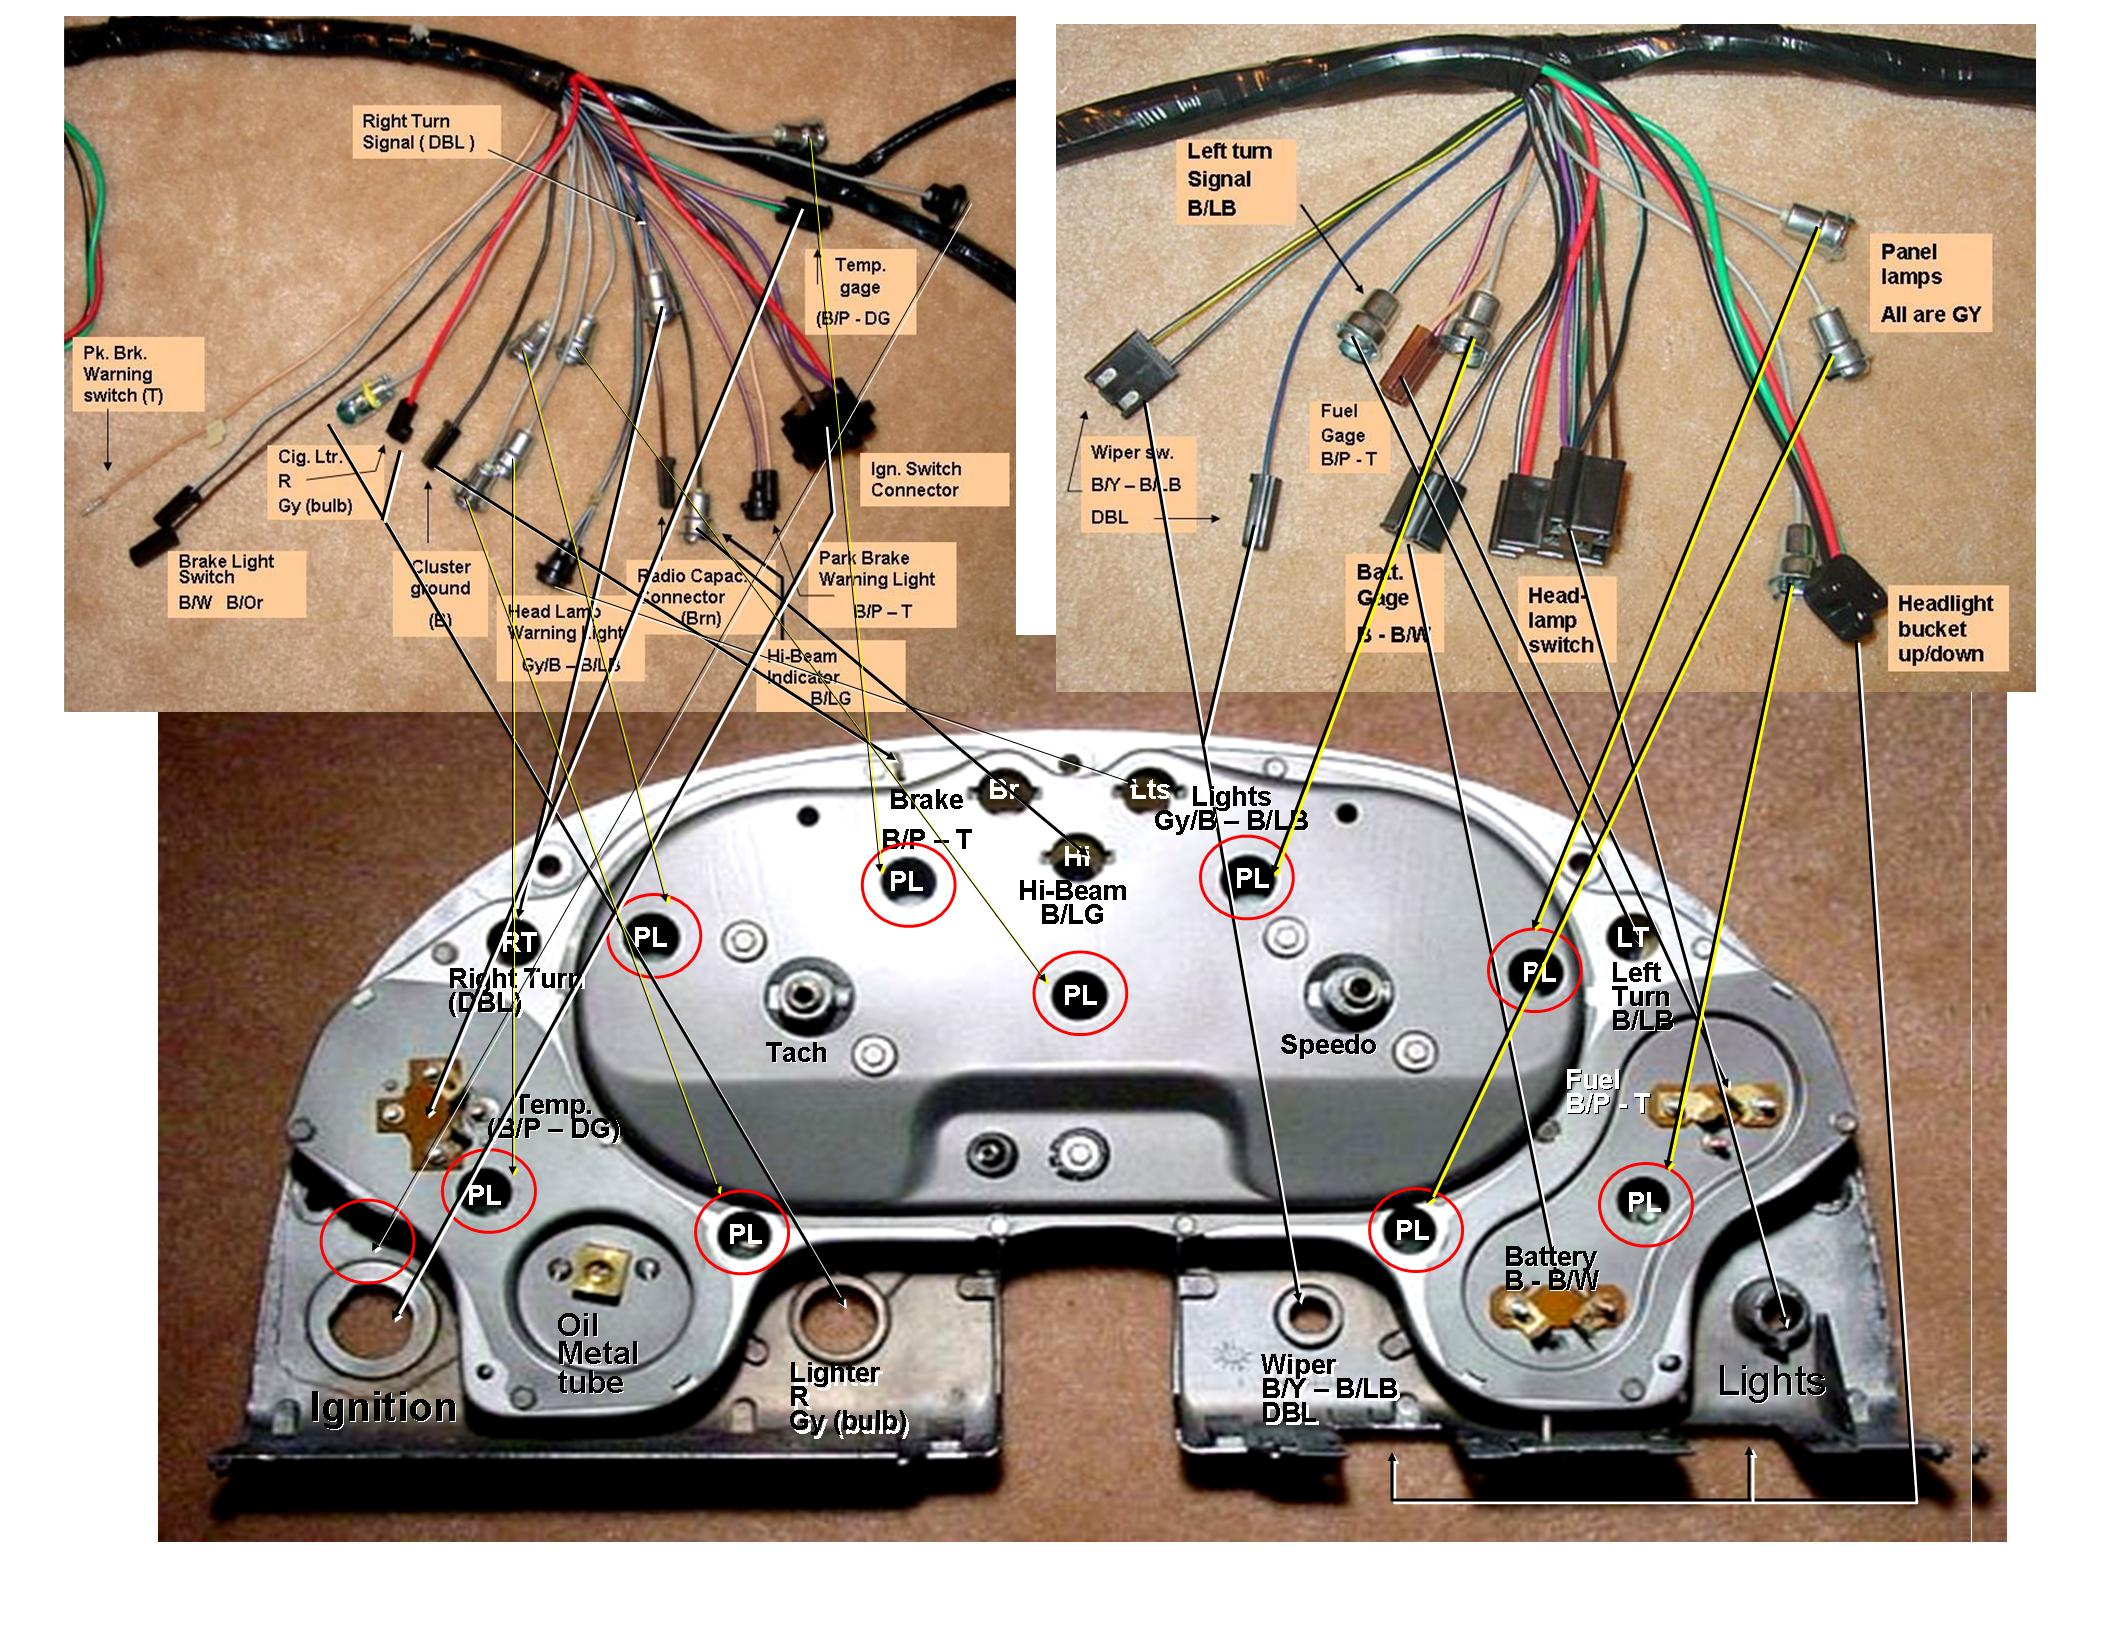 1965 mustang headlight wiring diagram probability determining probabilities using tree diagrams 1964 corvette cluster corvetteforum chevrolet forum discussion1964 5